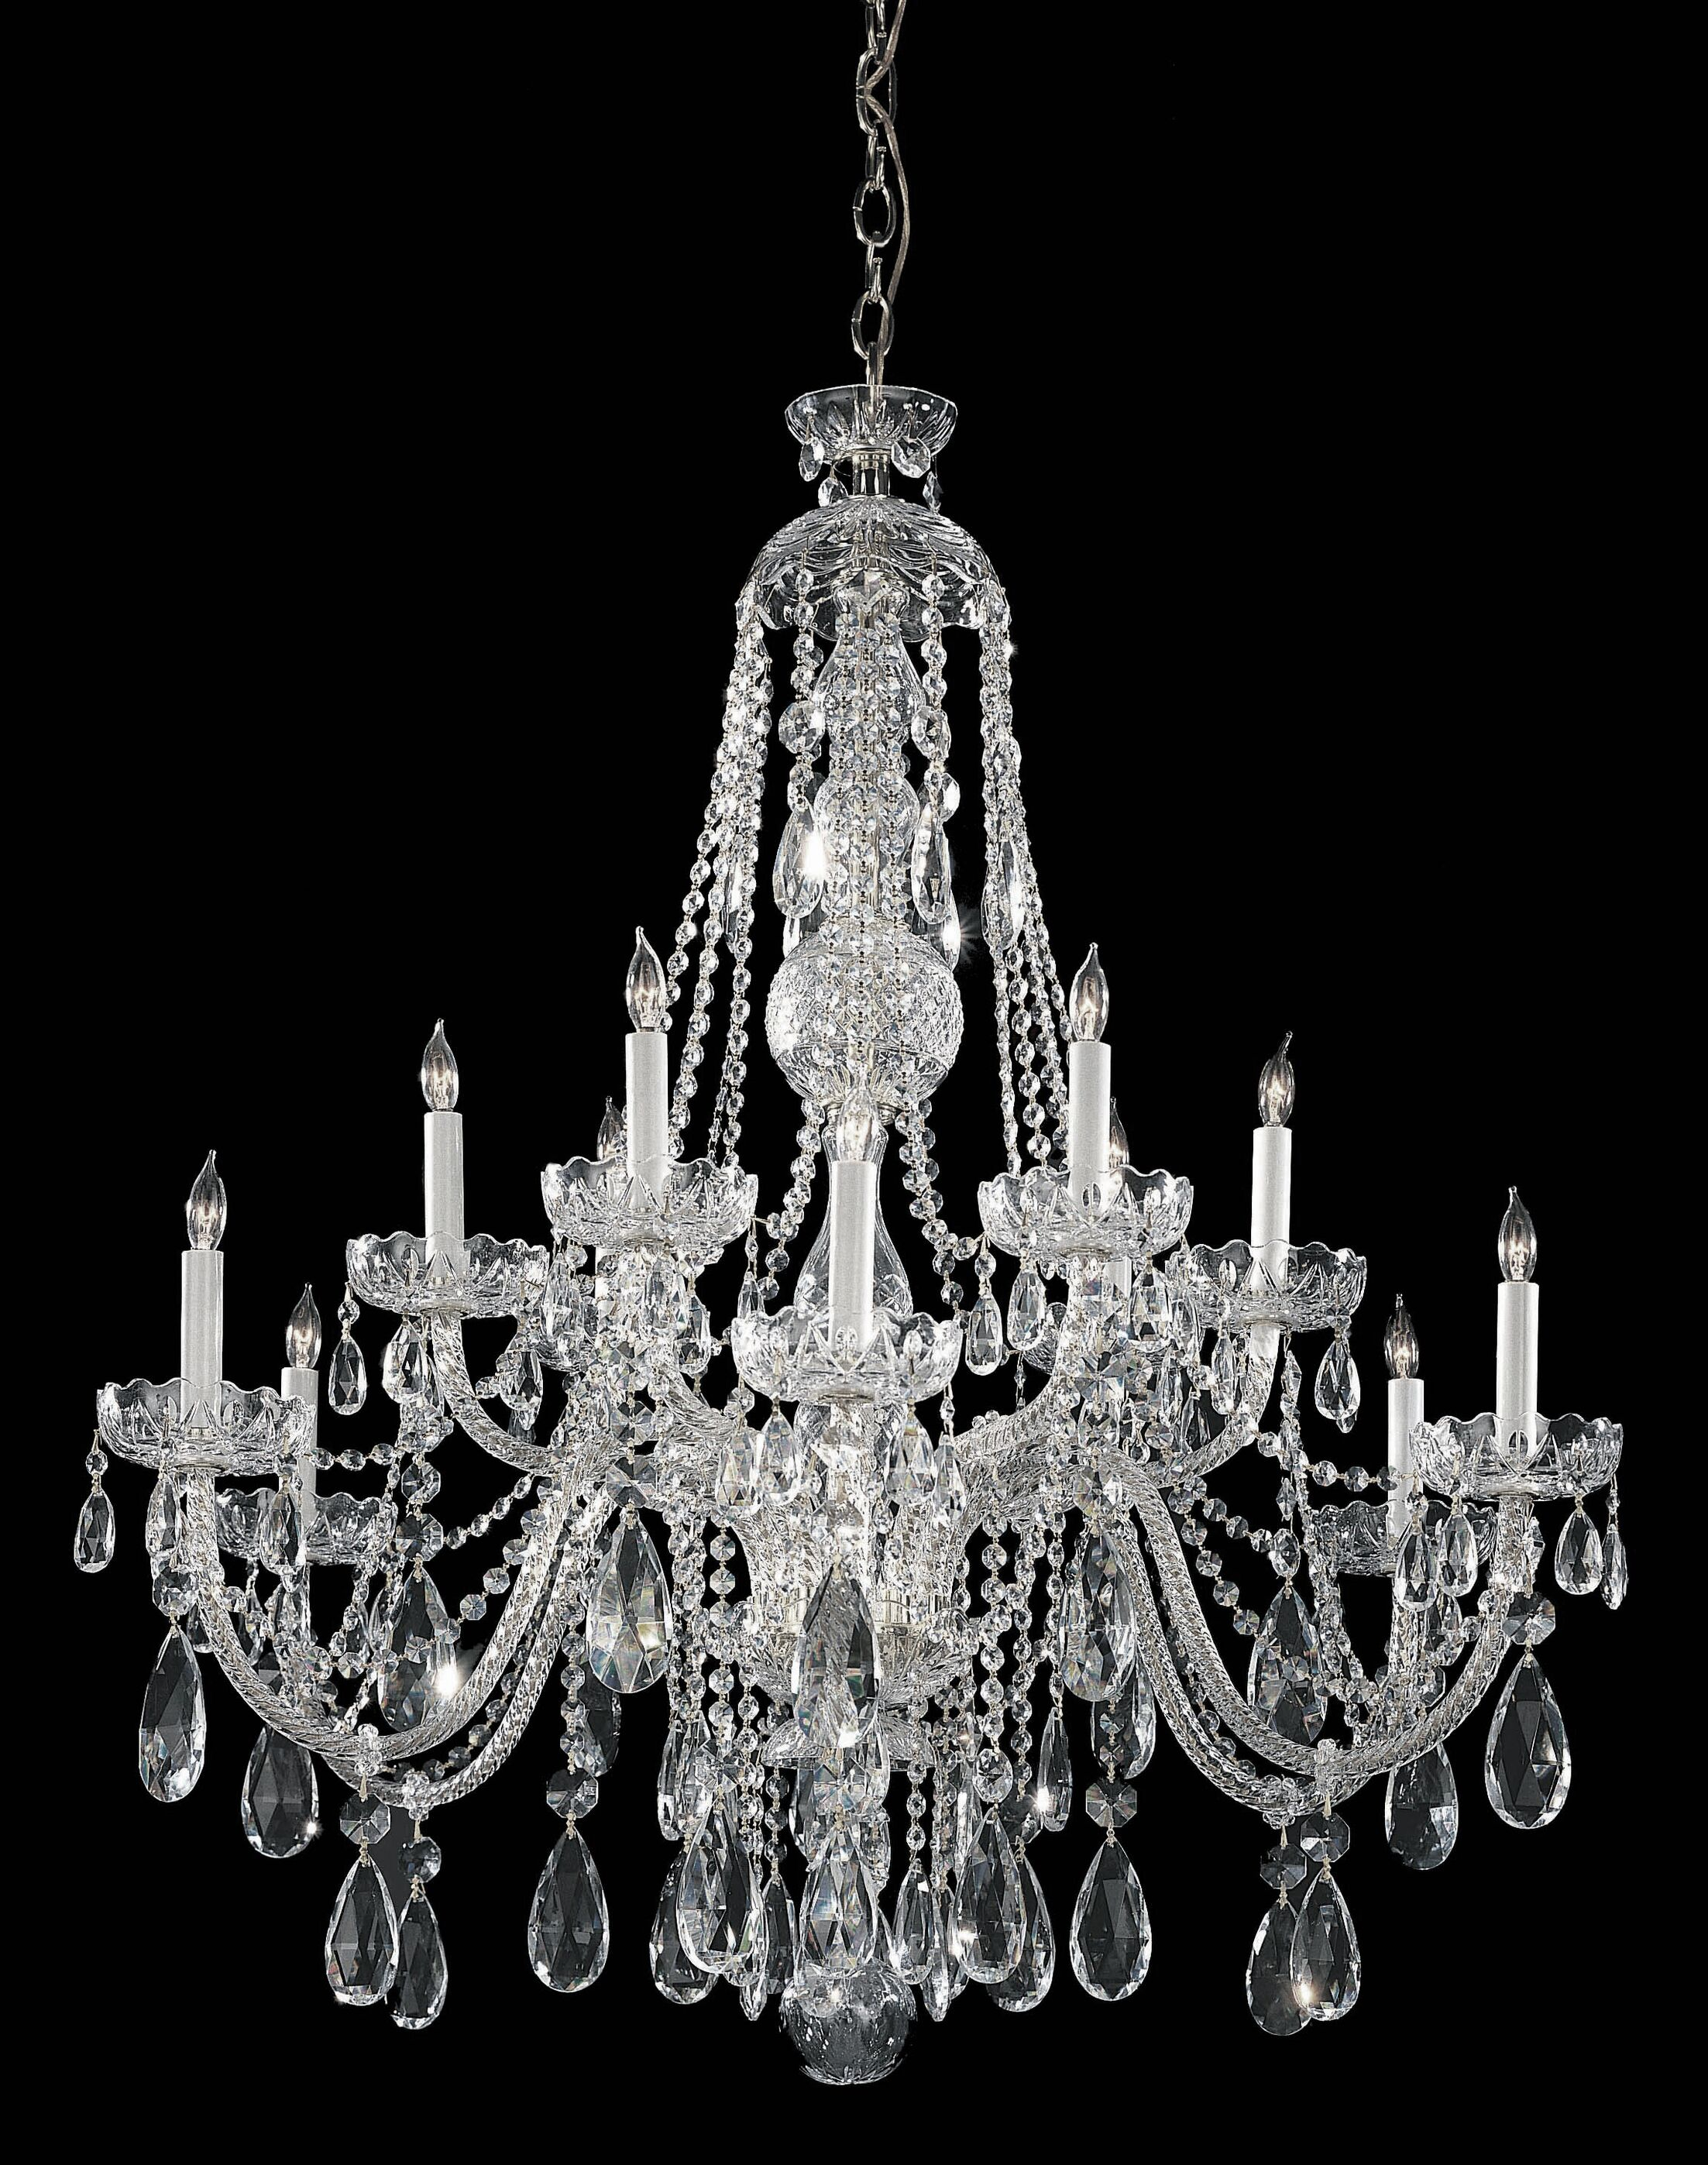 Milan 12-Light Candle Style Chandelier Finish: Chrome, Crystal Type: Majestic Wood Polished